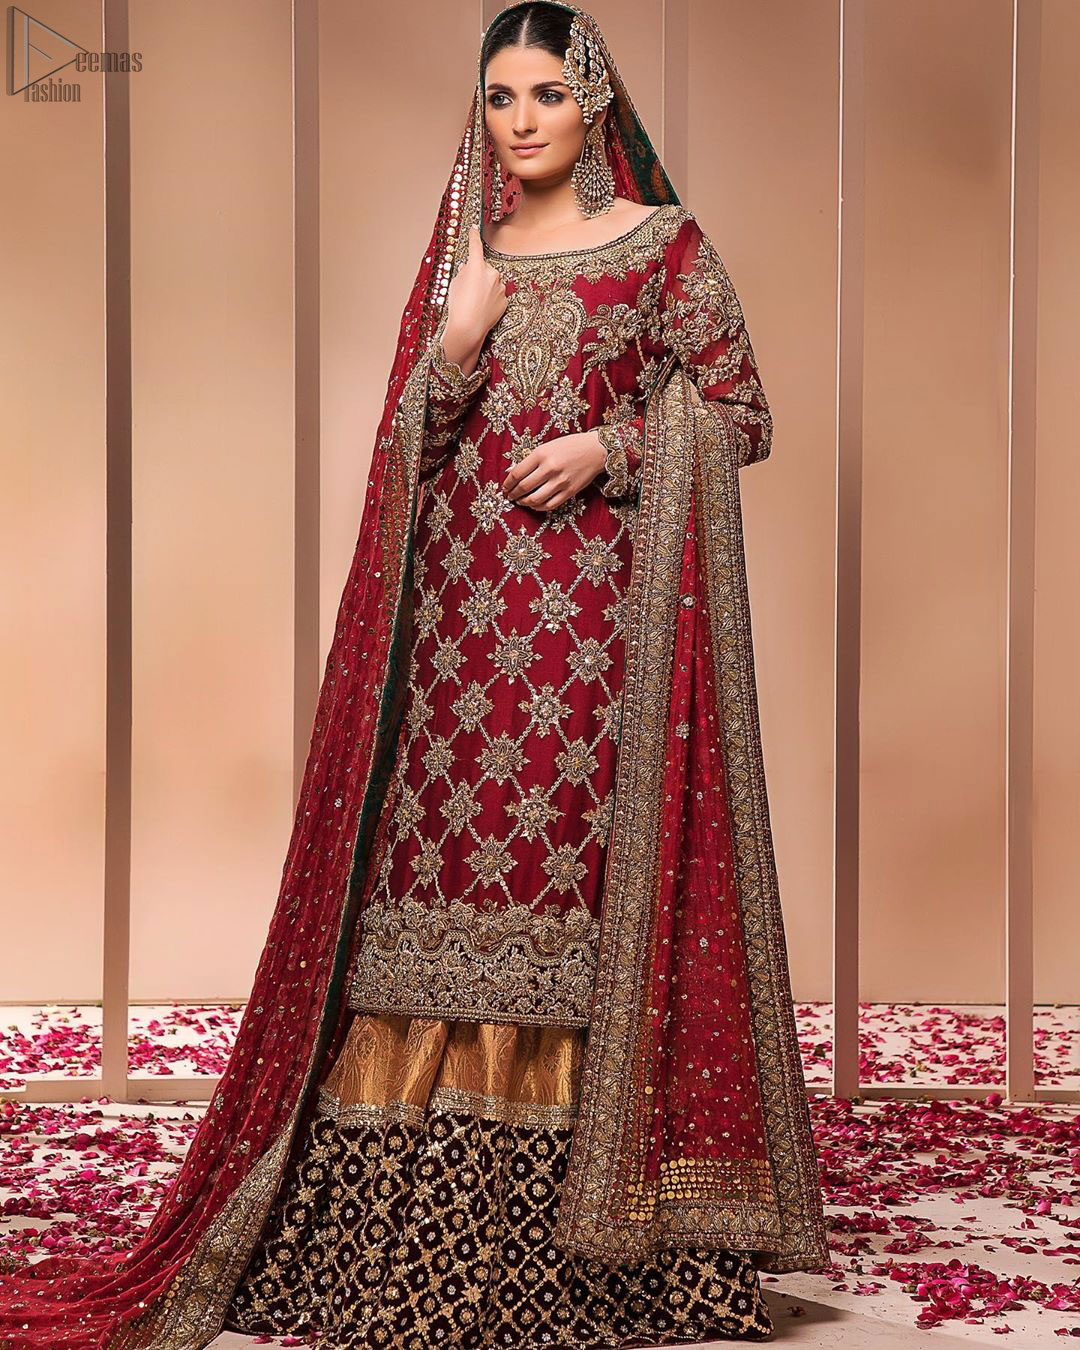 This style-savvy bride totally pulled off our classic bridal wear with an unmatchable grace and giving major bridal goals. The lehenga colour is the perfect feminine and delicate shade with its meticulously crafted fabrication with geometrically embellished border filled with gorgeous tiny floral motifs in it. The shirt is beautifully ornamented with geometrically arranged motifs and intricate details at the bottom. The zardozi embroidery is done in the shade of tan. Pair it up with maroon organza dupatta adorned with sterling sequences and four-sided embellished borders to give it a regal look.